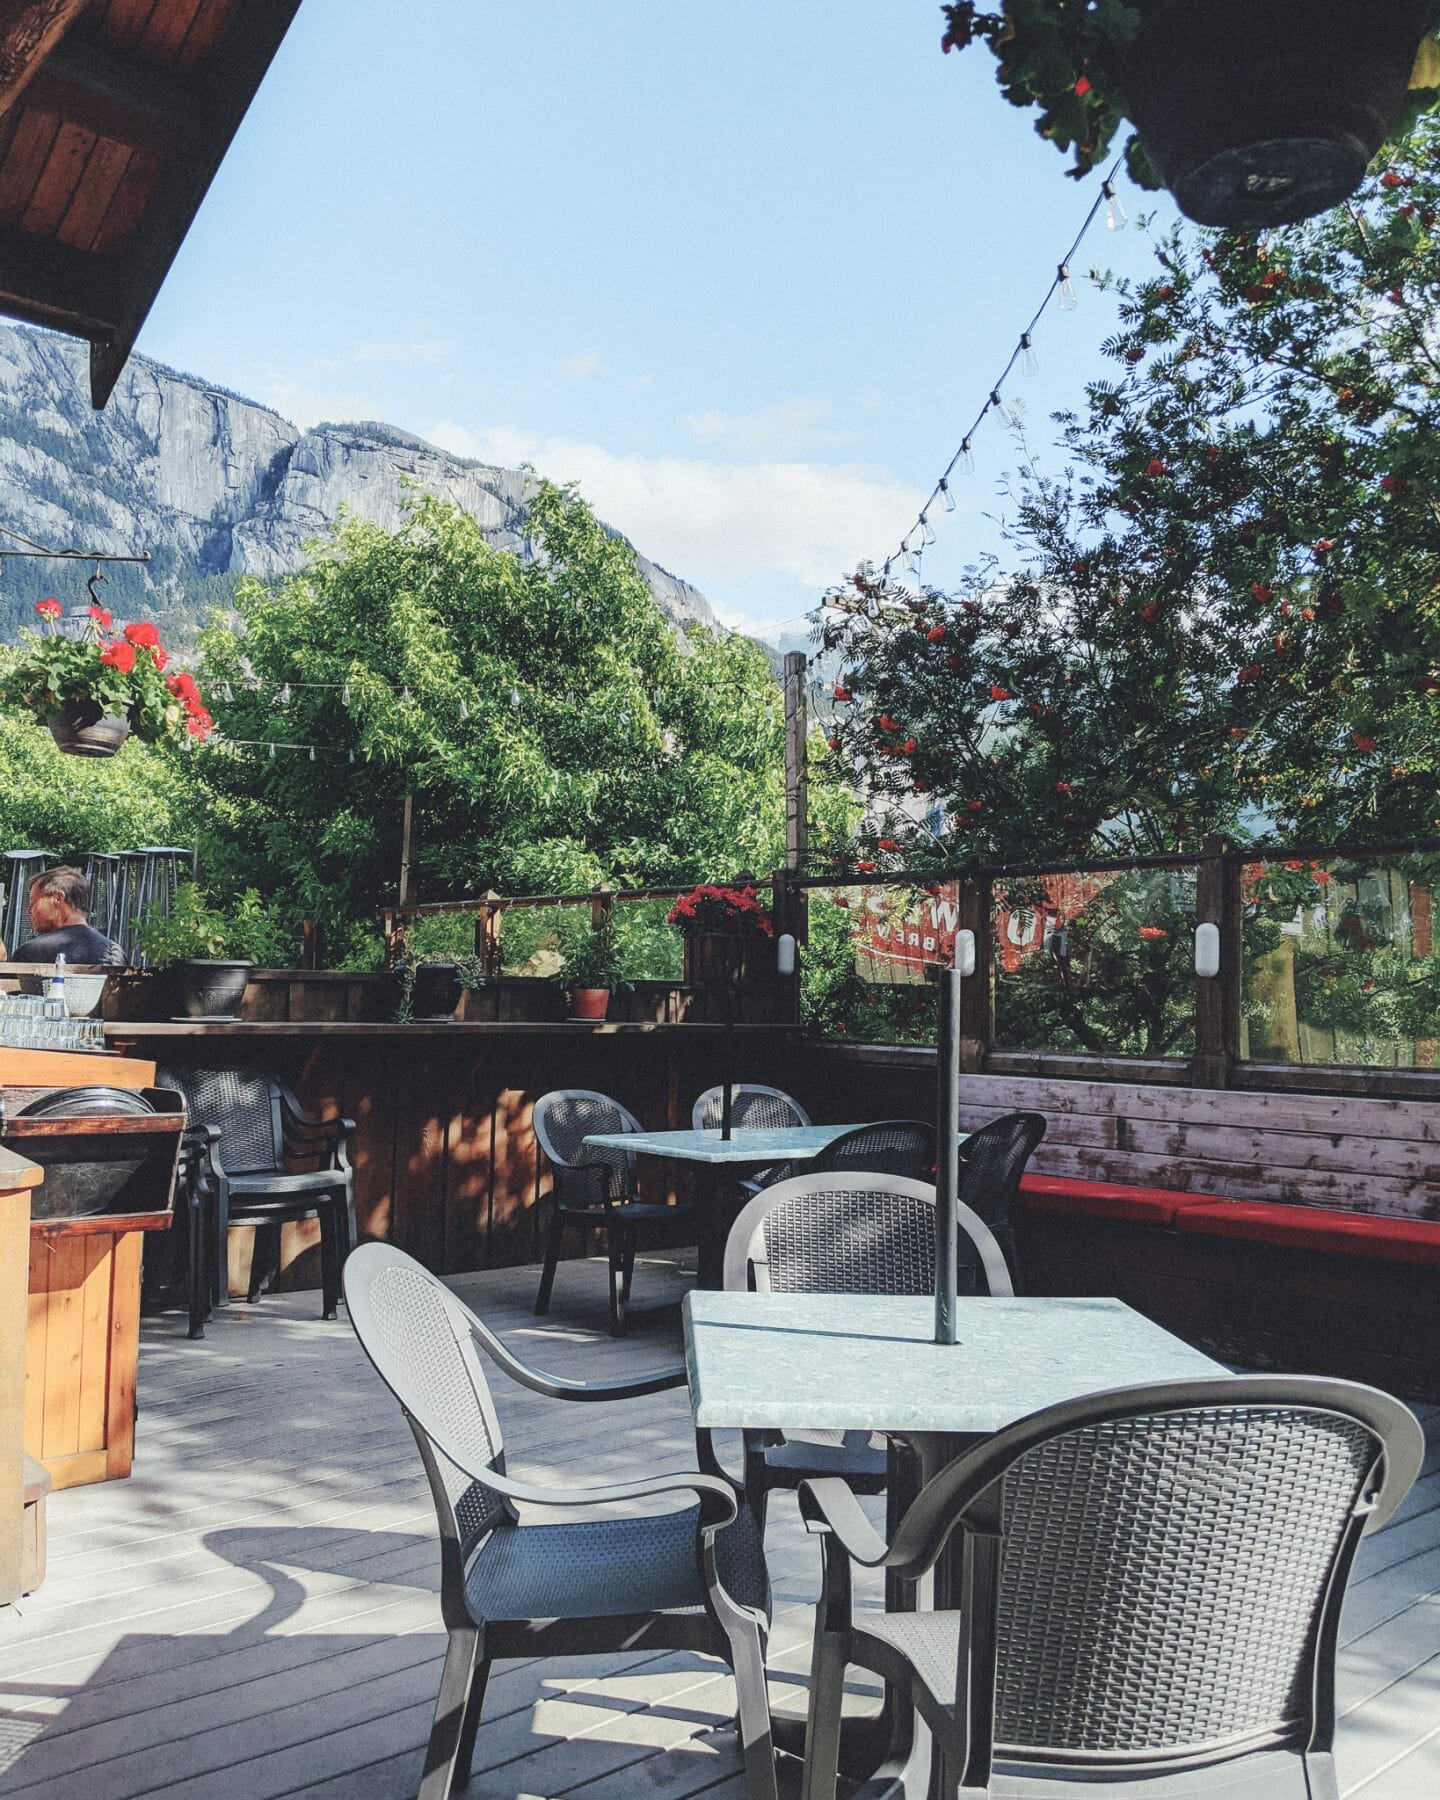 The beautiful outdoor patio at Howe Sound Brewpub